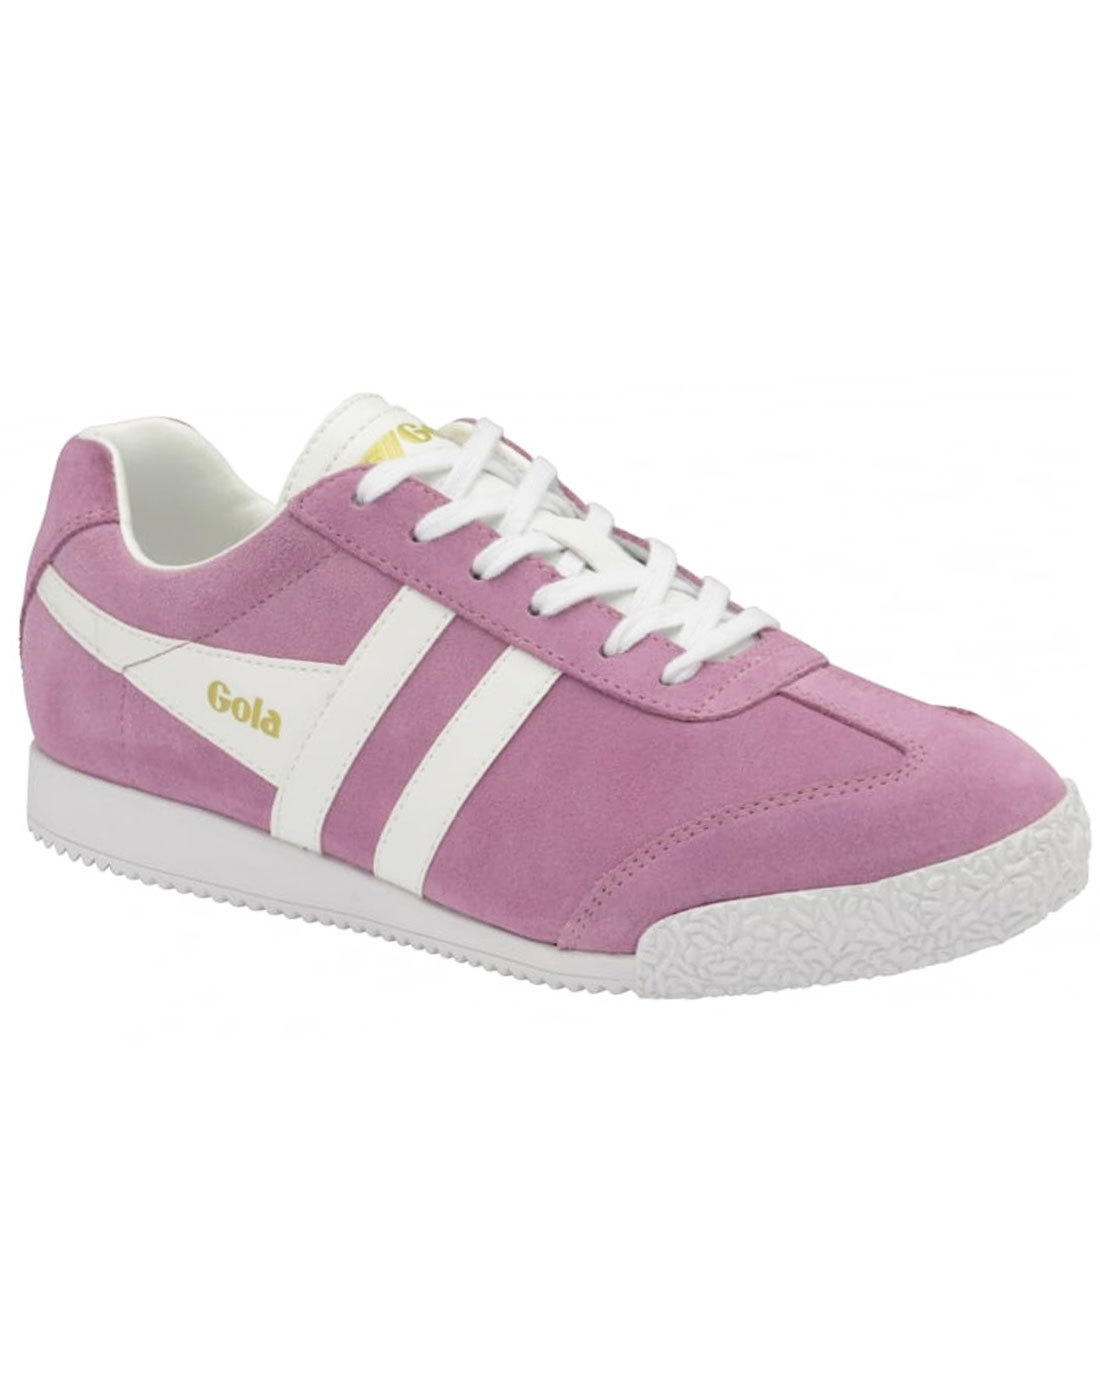 GOLA Harrier Suede Women's Retro 70s Trainers PINK